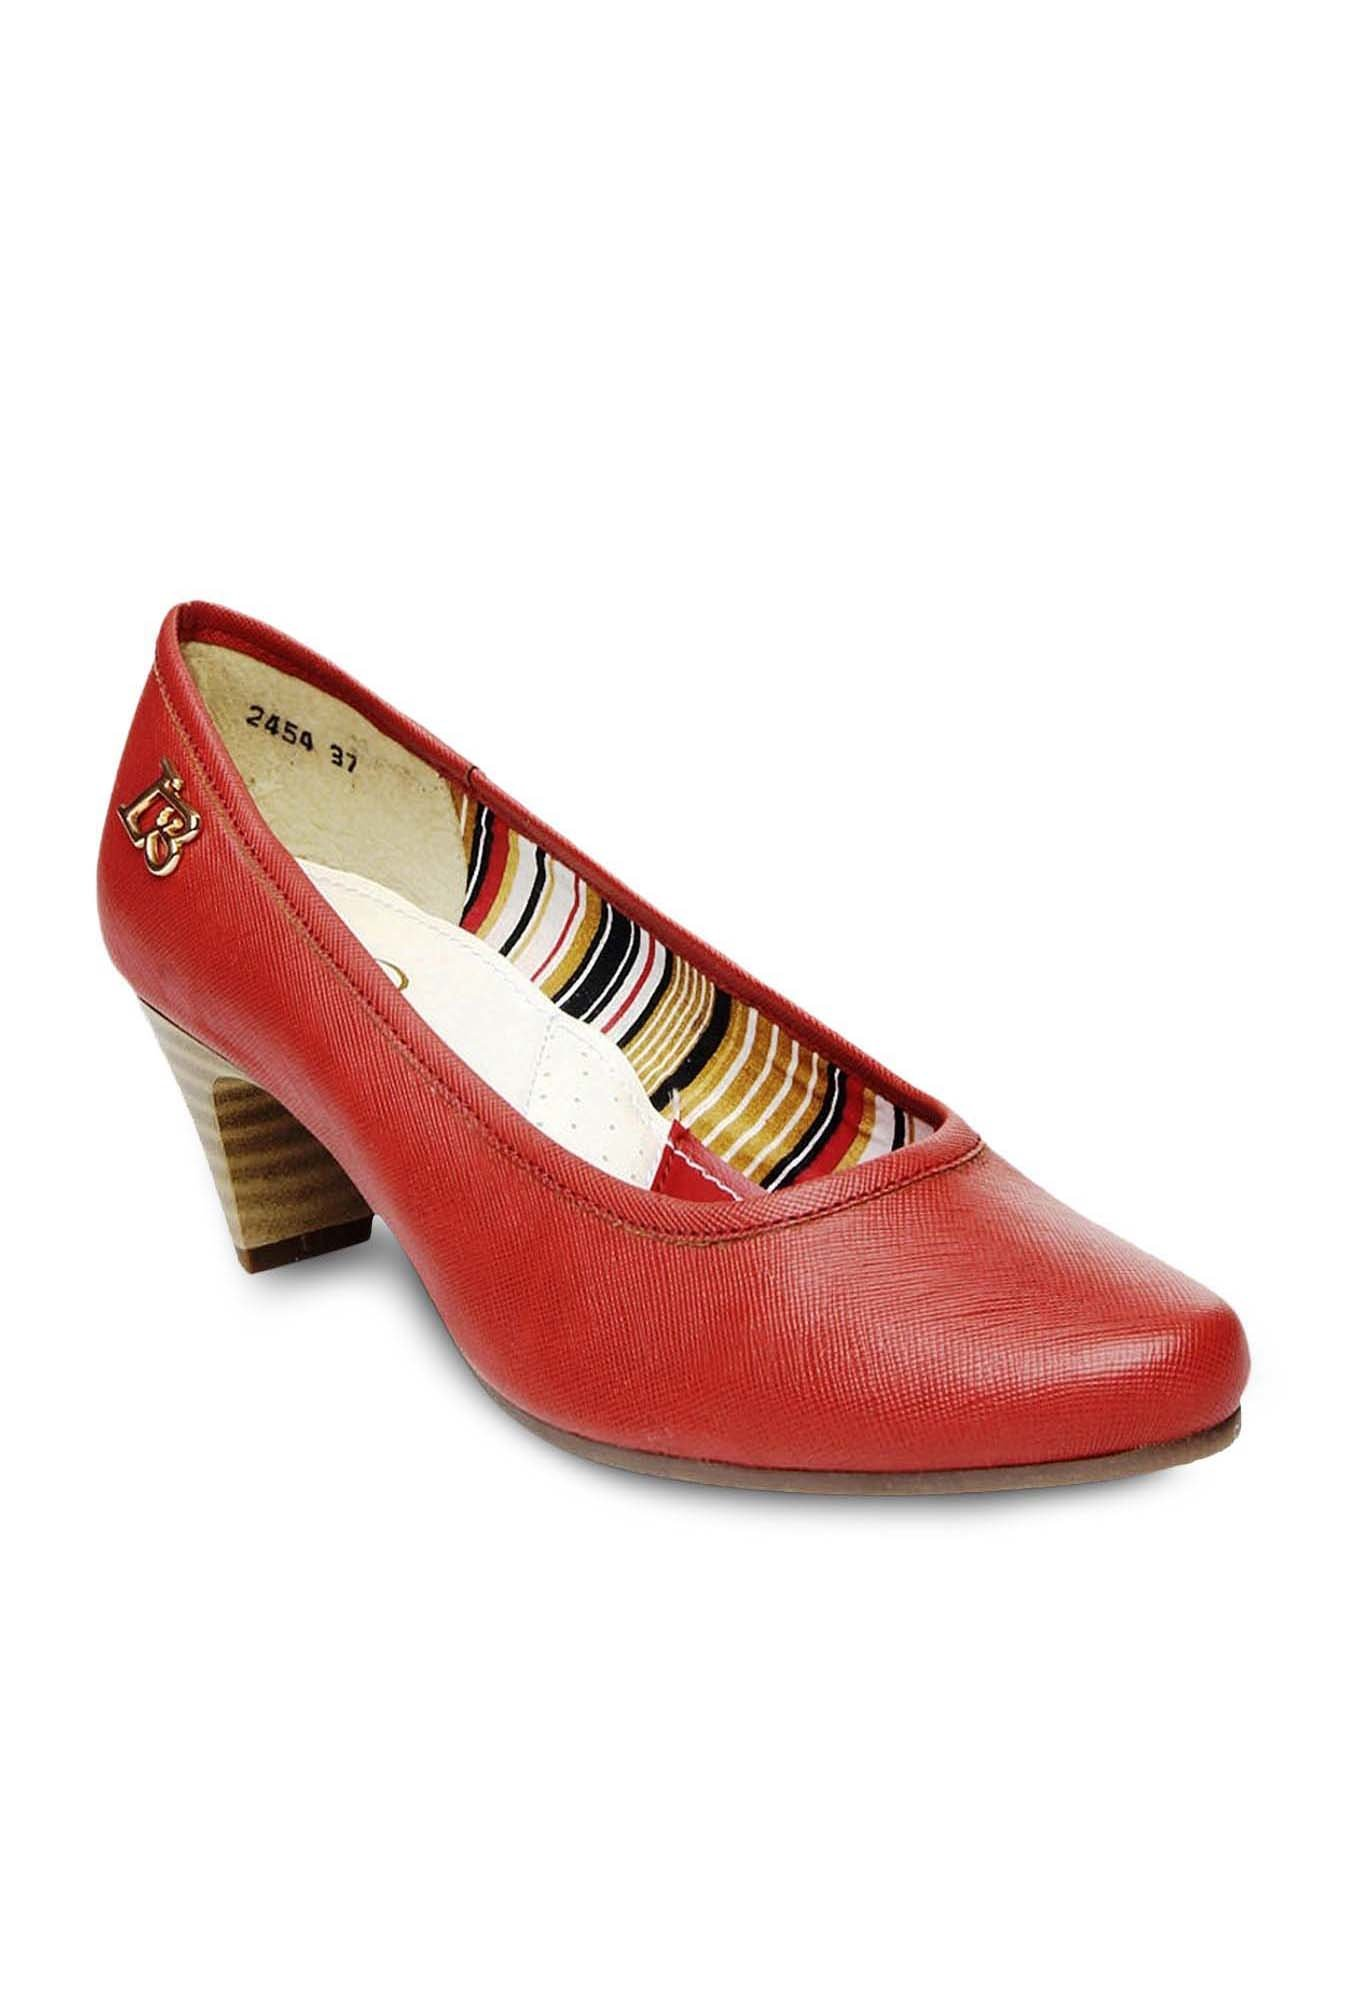 La Briza Red Block Heeled Pumps